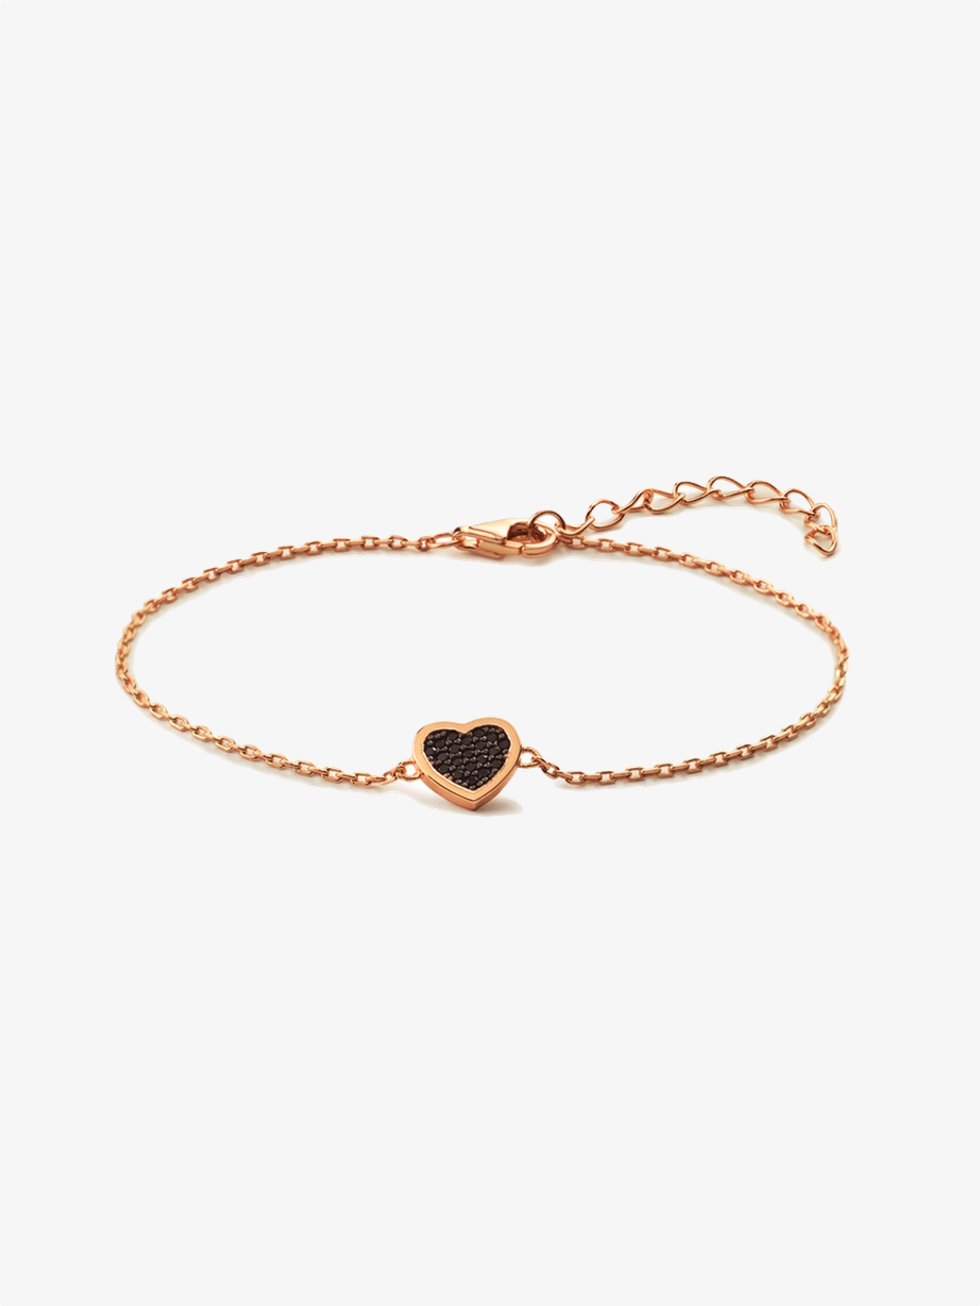 TRUE LOVE rose bracelet